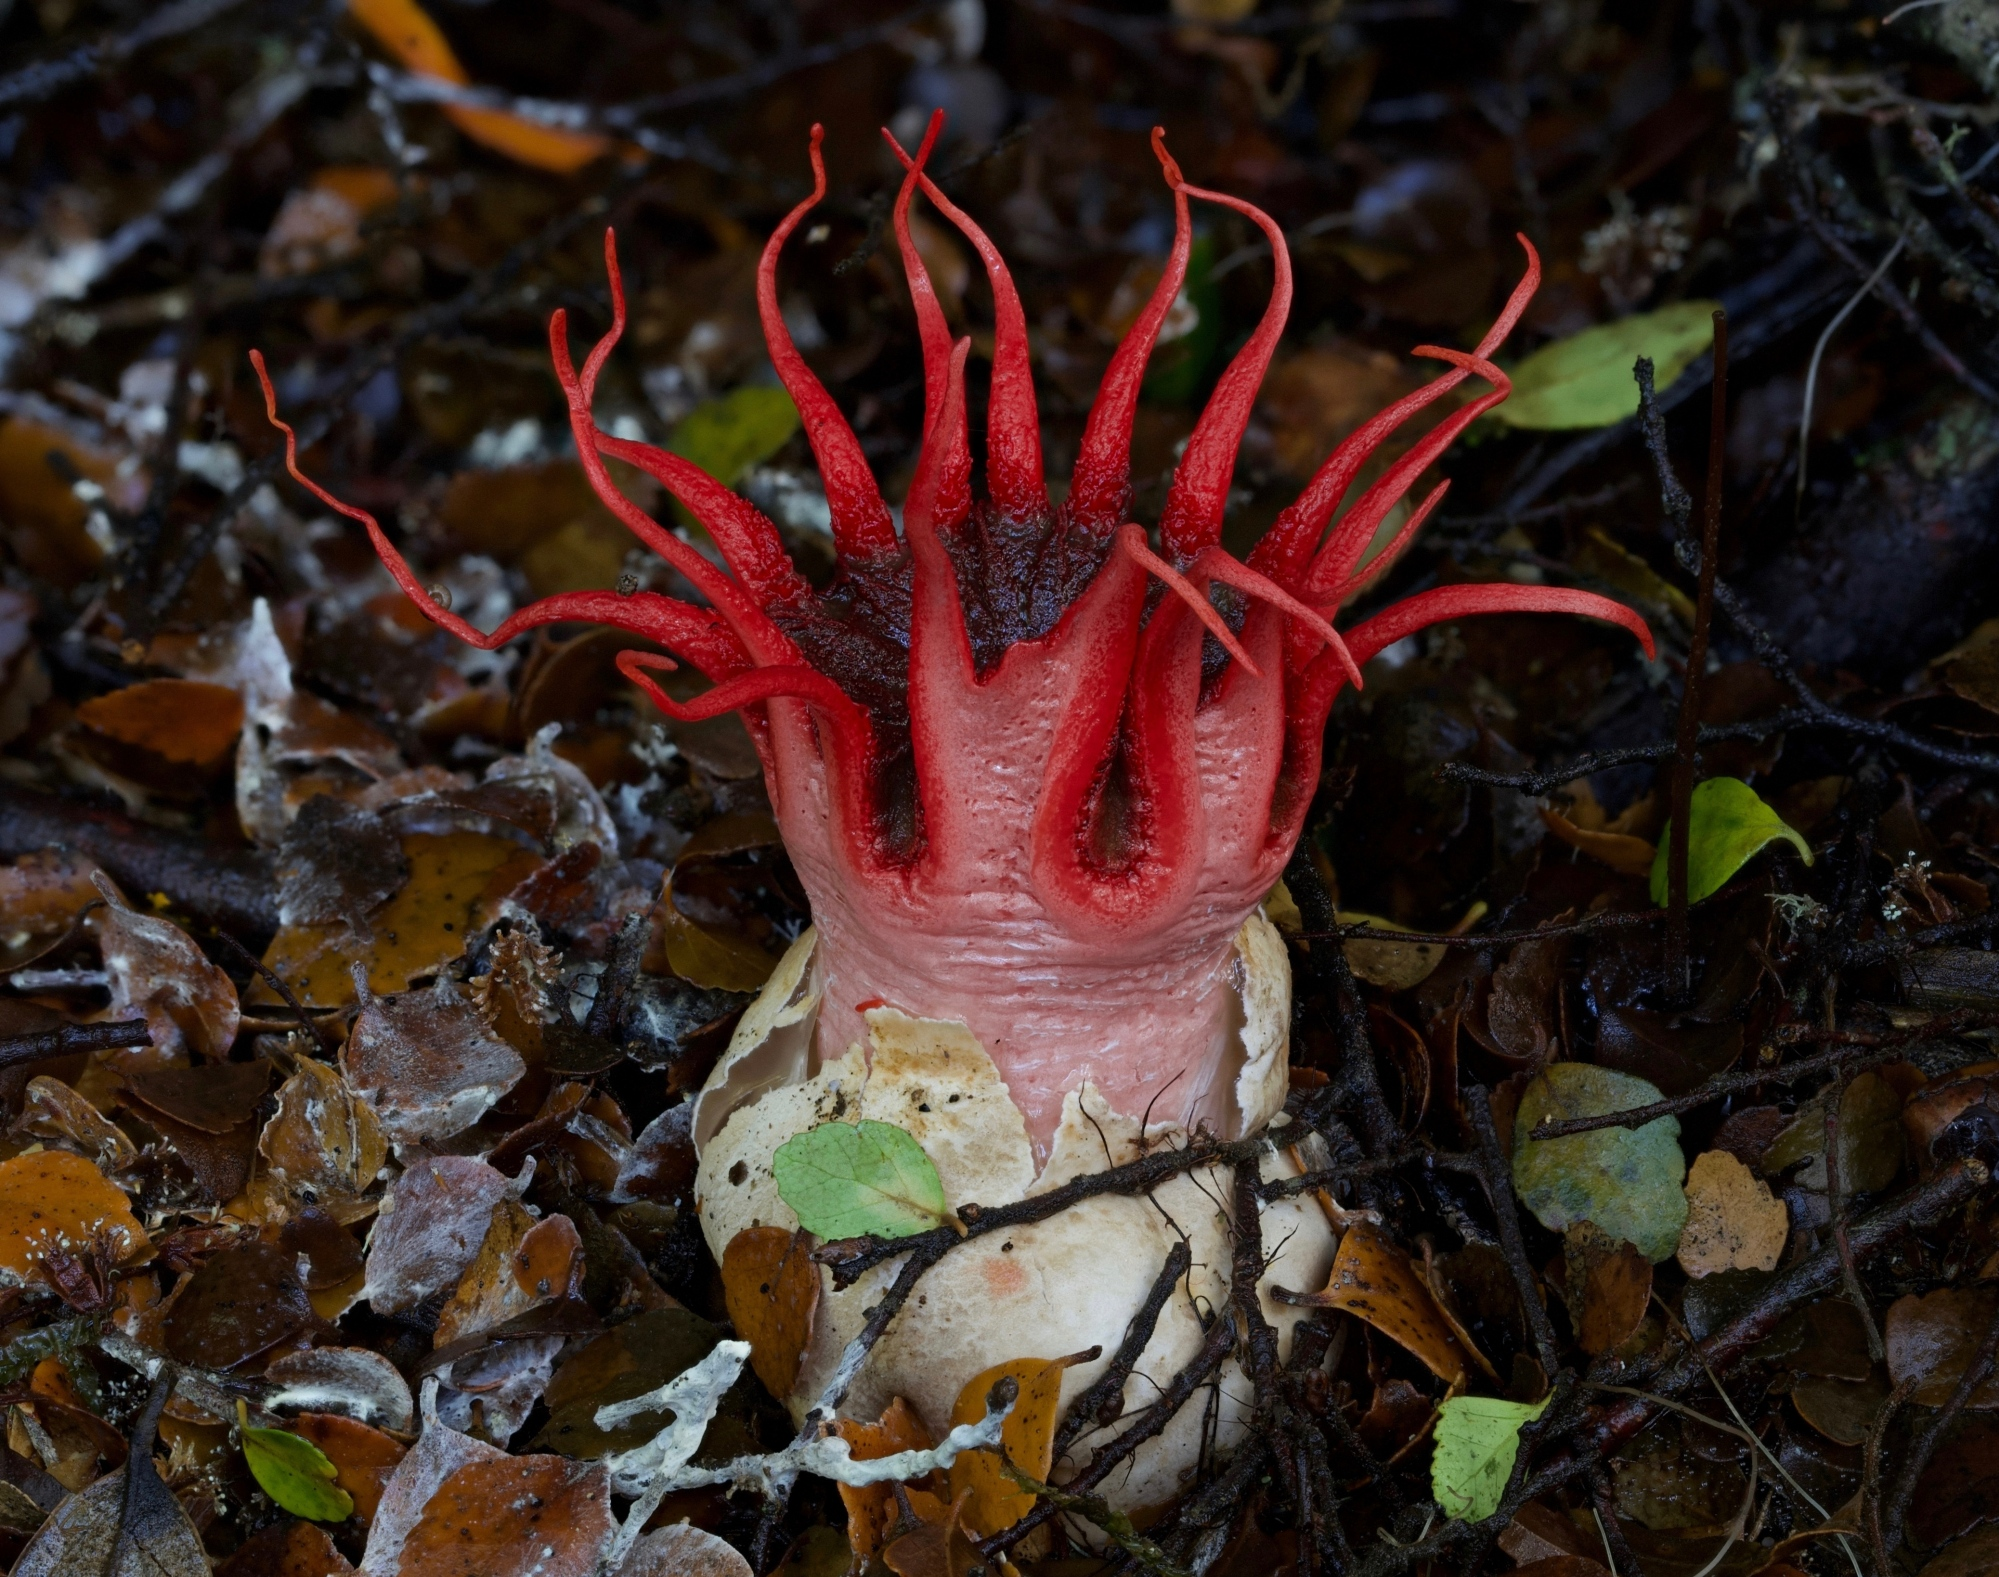 Aseroe rubra by Mark Bower